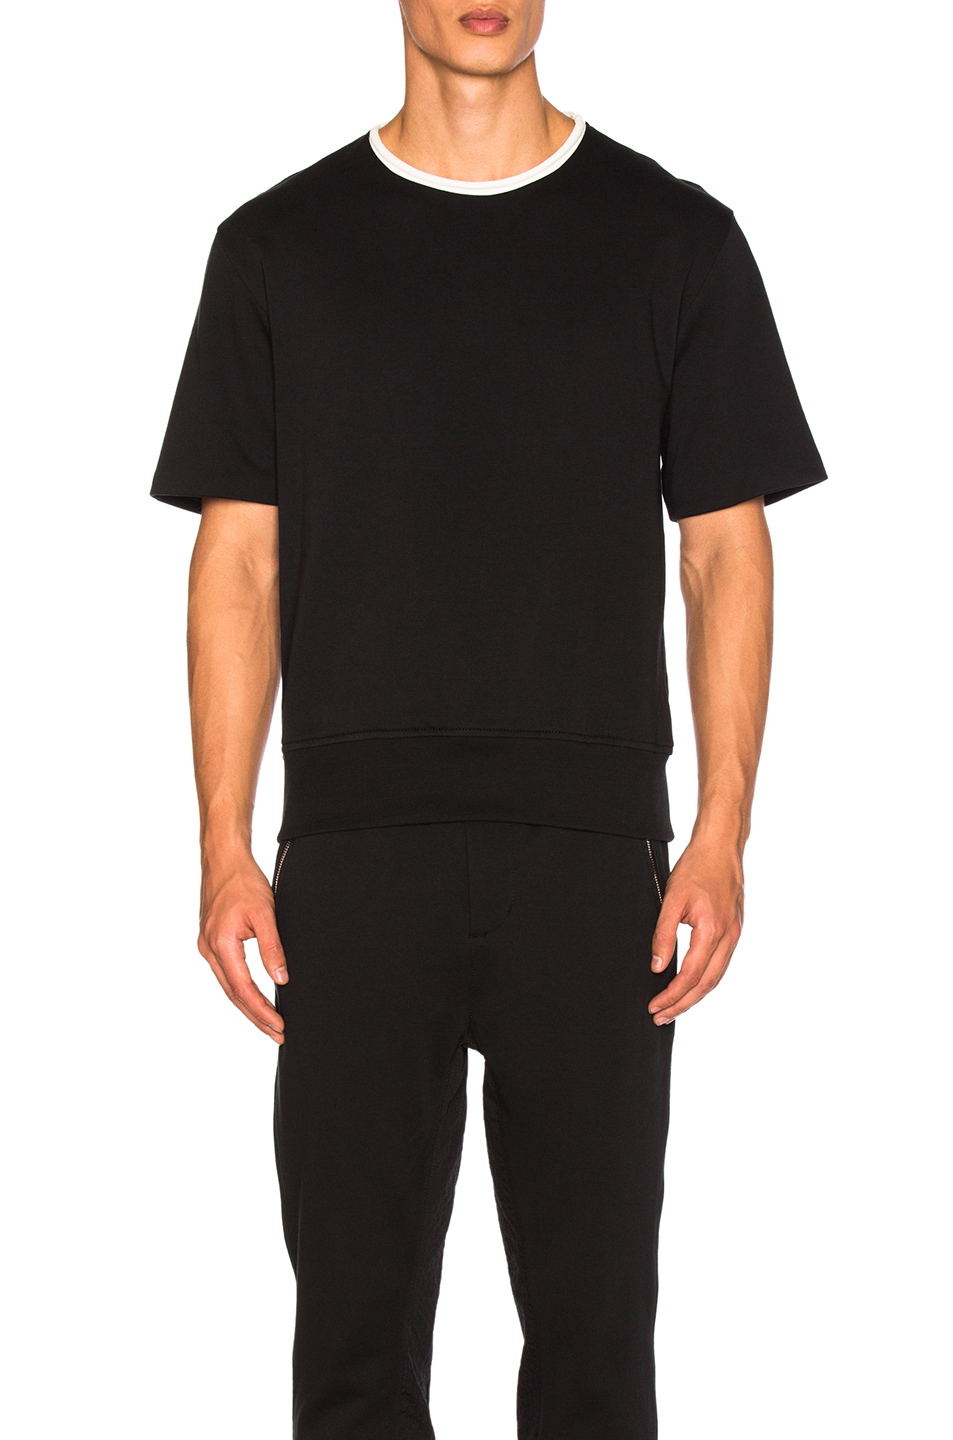 3.1 phillip lim Wide Rib French Terry Short Sleeve Shirt in Black